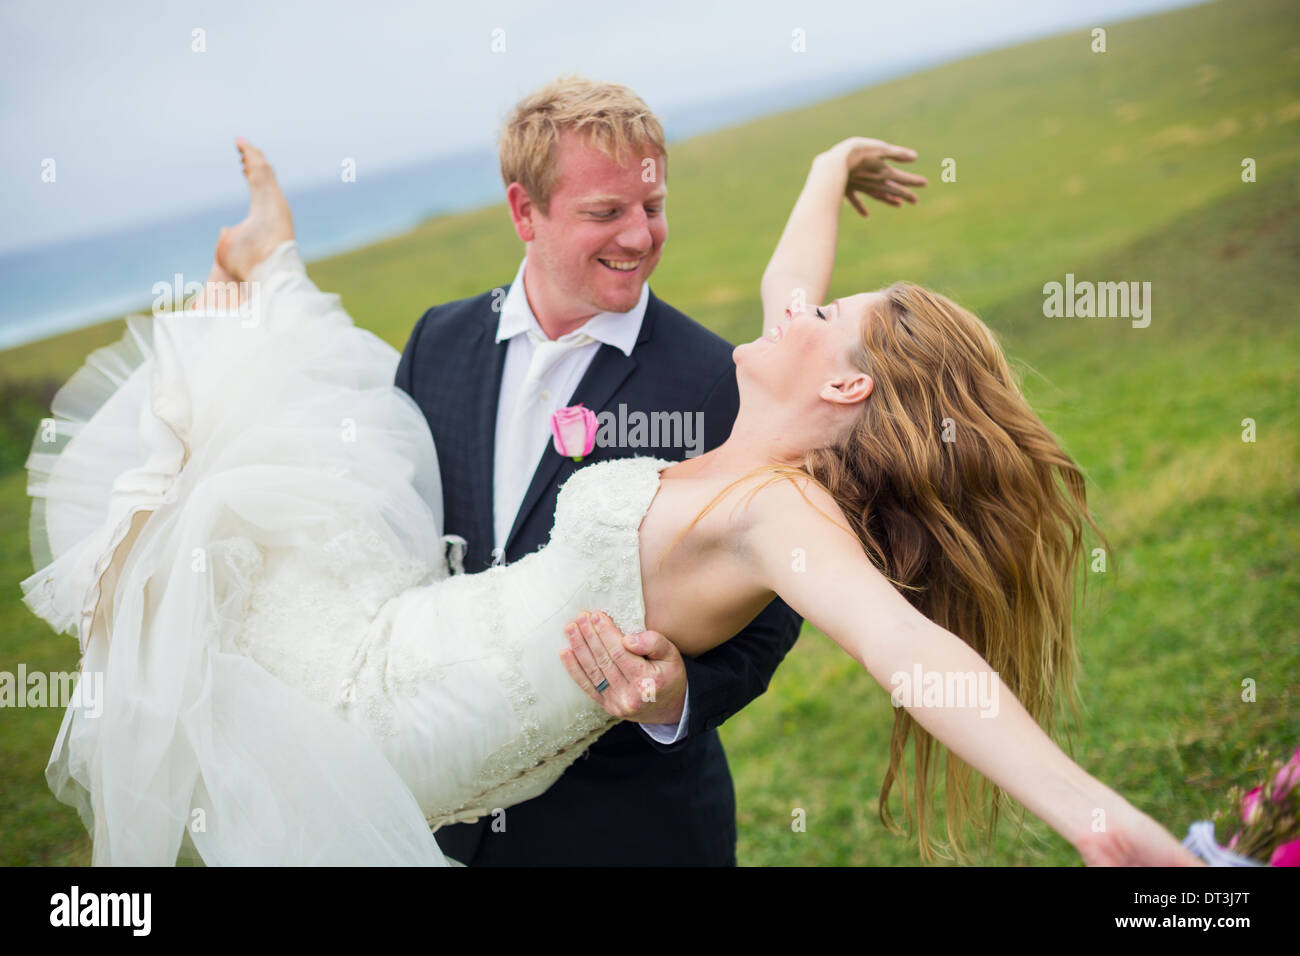 Wedding Couple, Happy Bride and Groom, Shallow depth of field, focus on bride - Stock Image